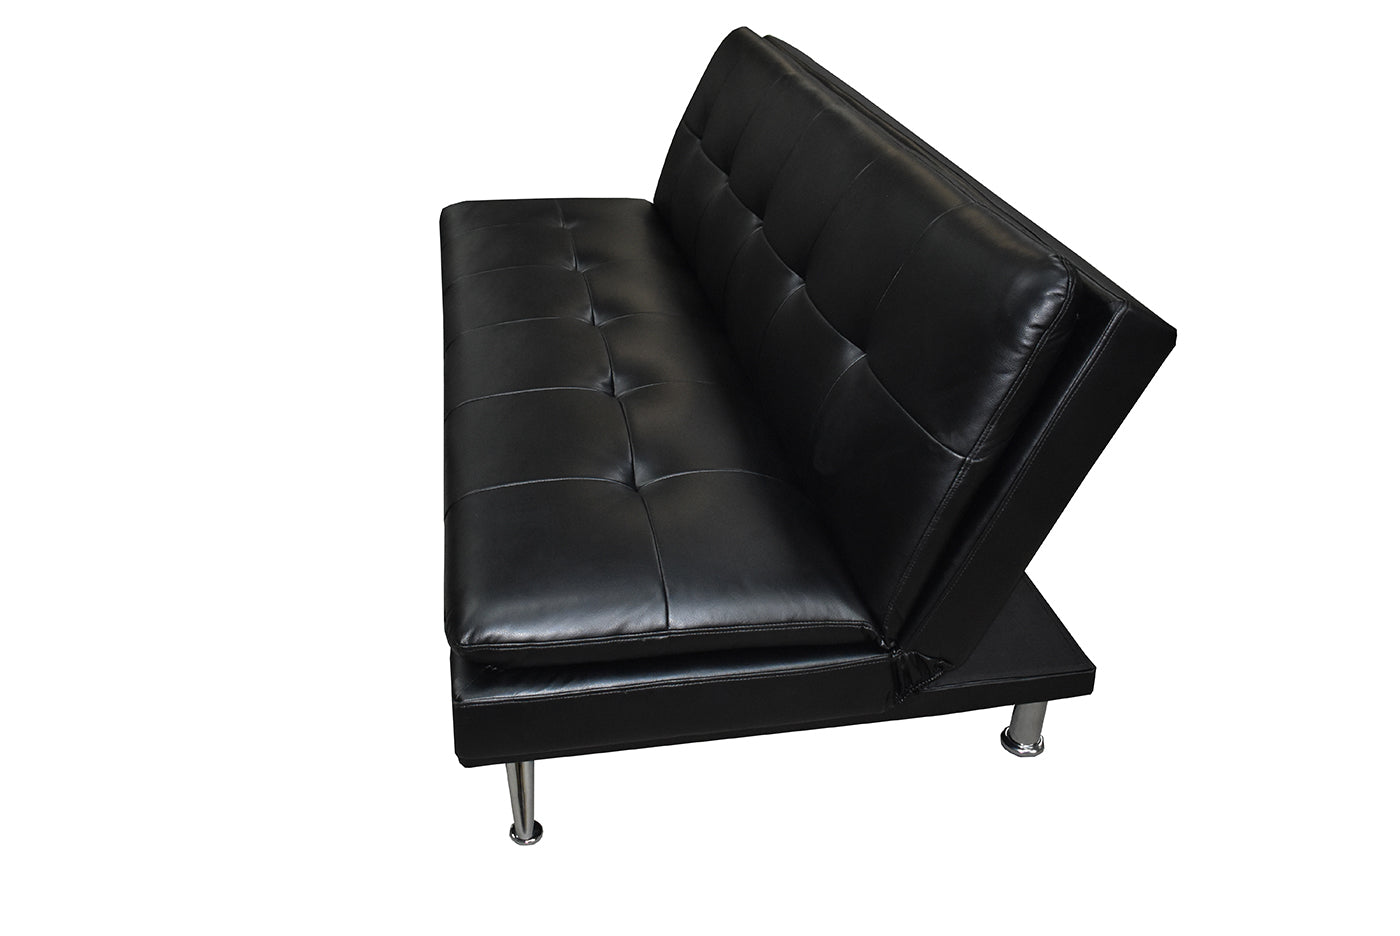 SOFA BED GSA-12027 GH CHROME LEGS, LEATHER AIR - Muebles Troncoso